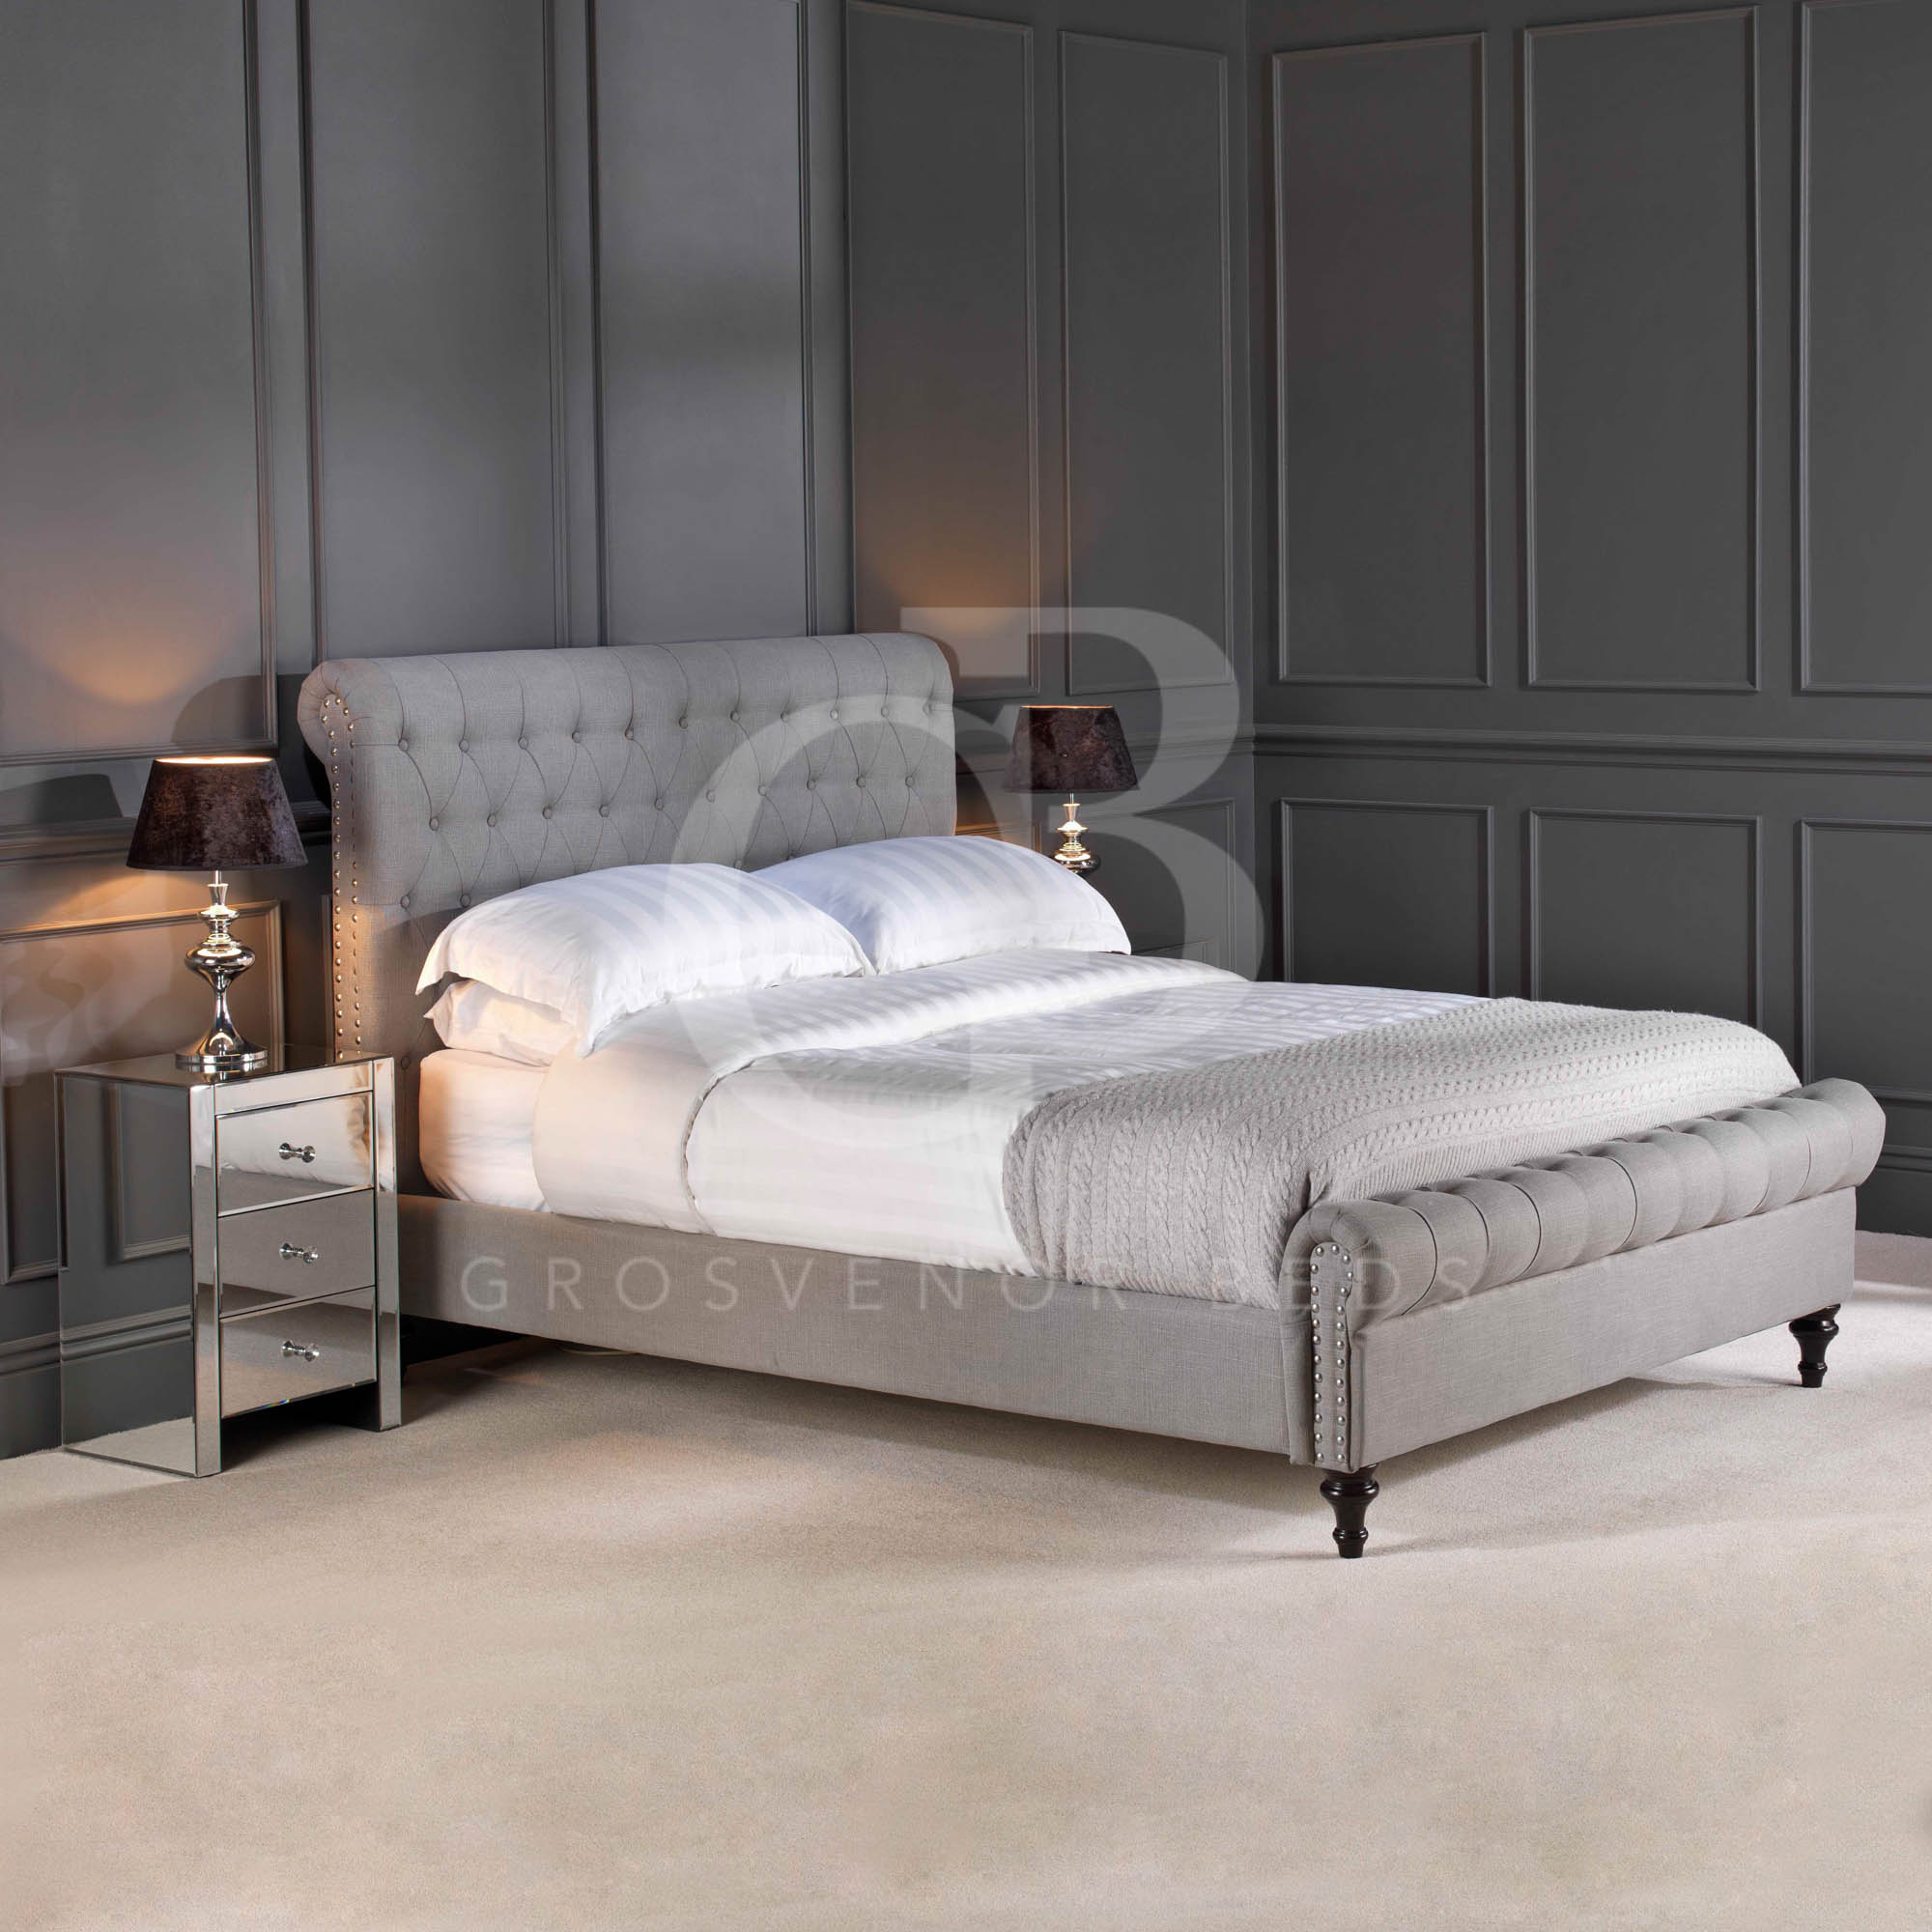 Premium Upholstered Linen Chesterfield Bed In Double King Super King Ego1220s Ebay